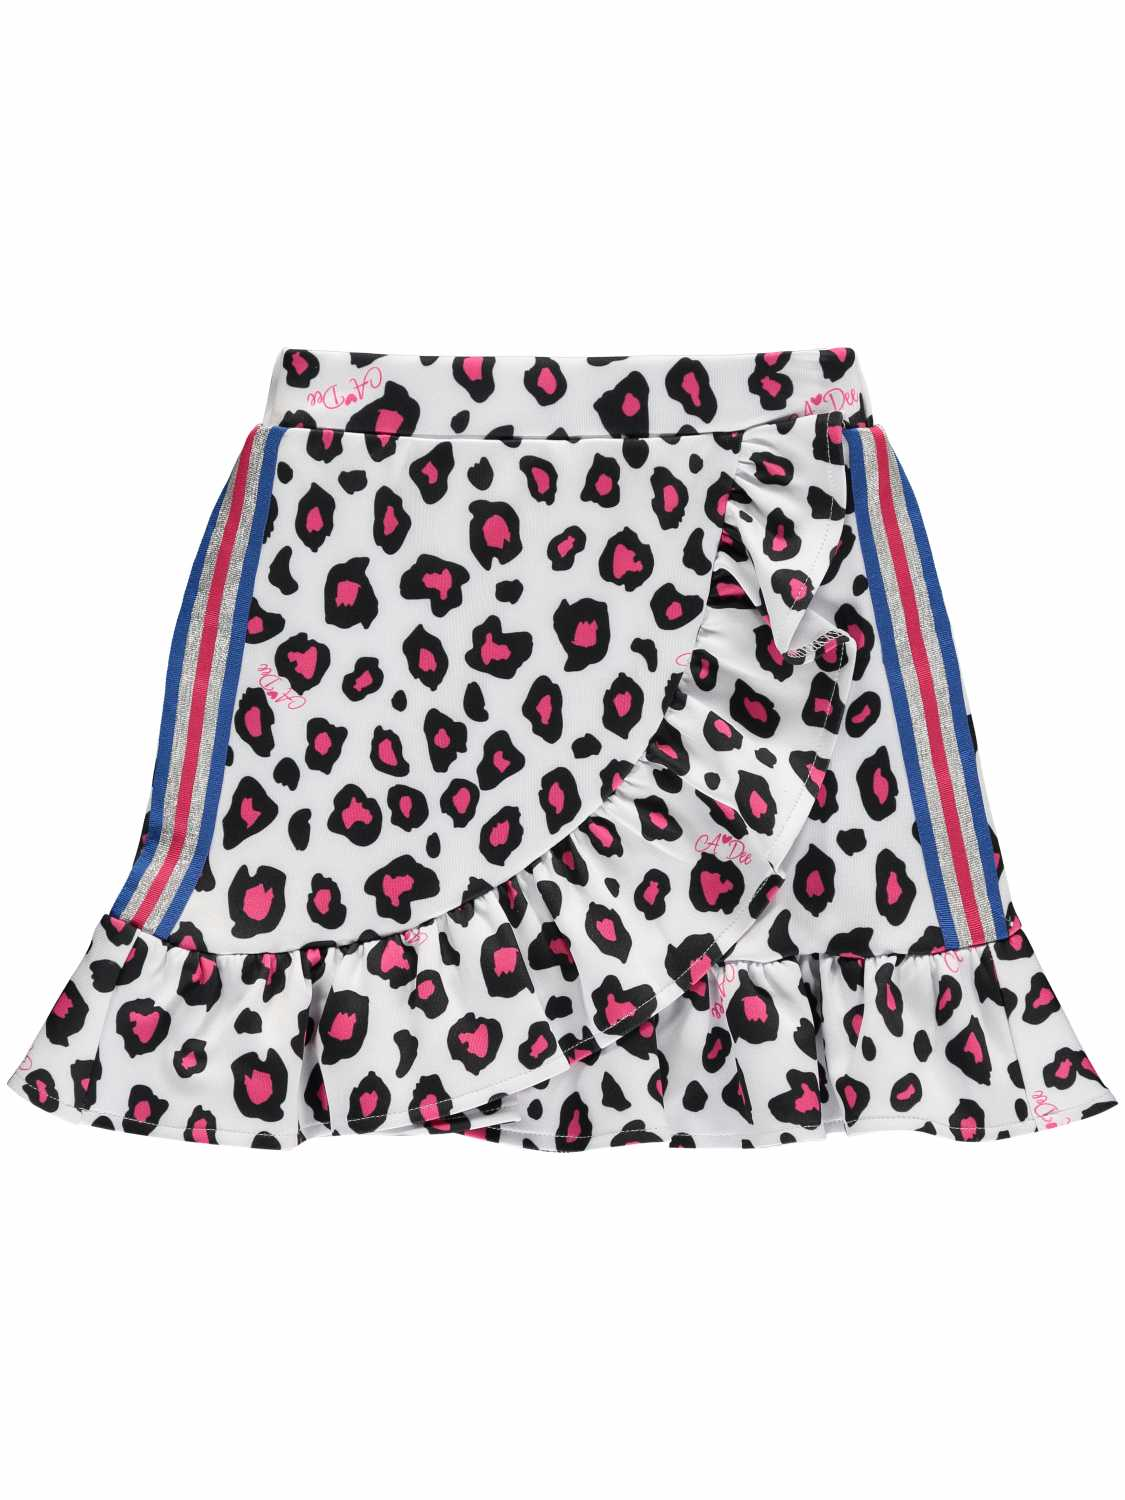 Ariana Dee Rok - meisjes - All over print -